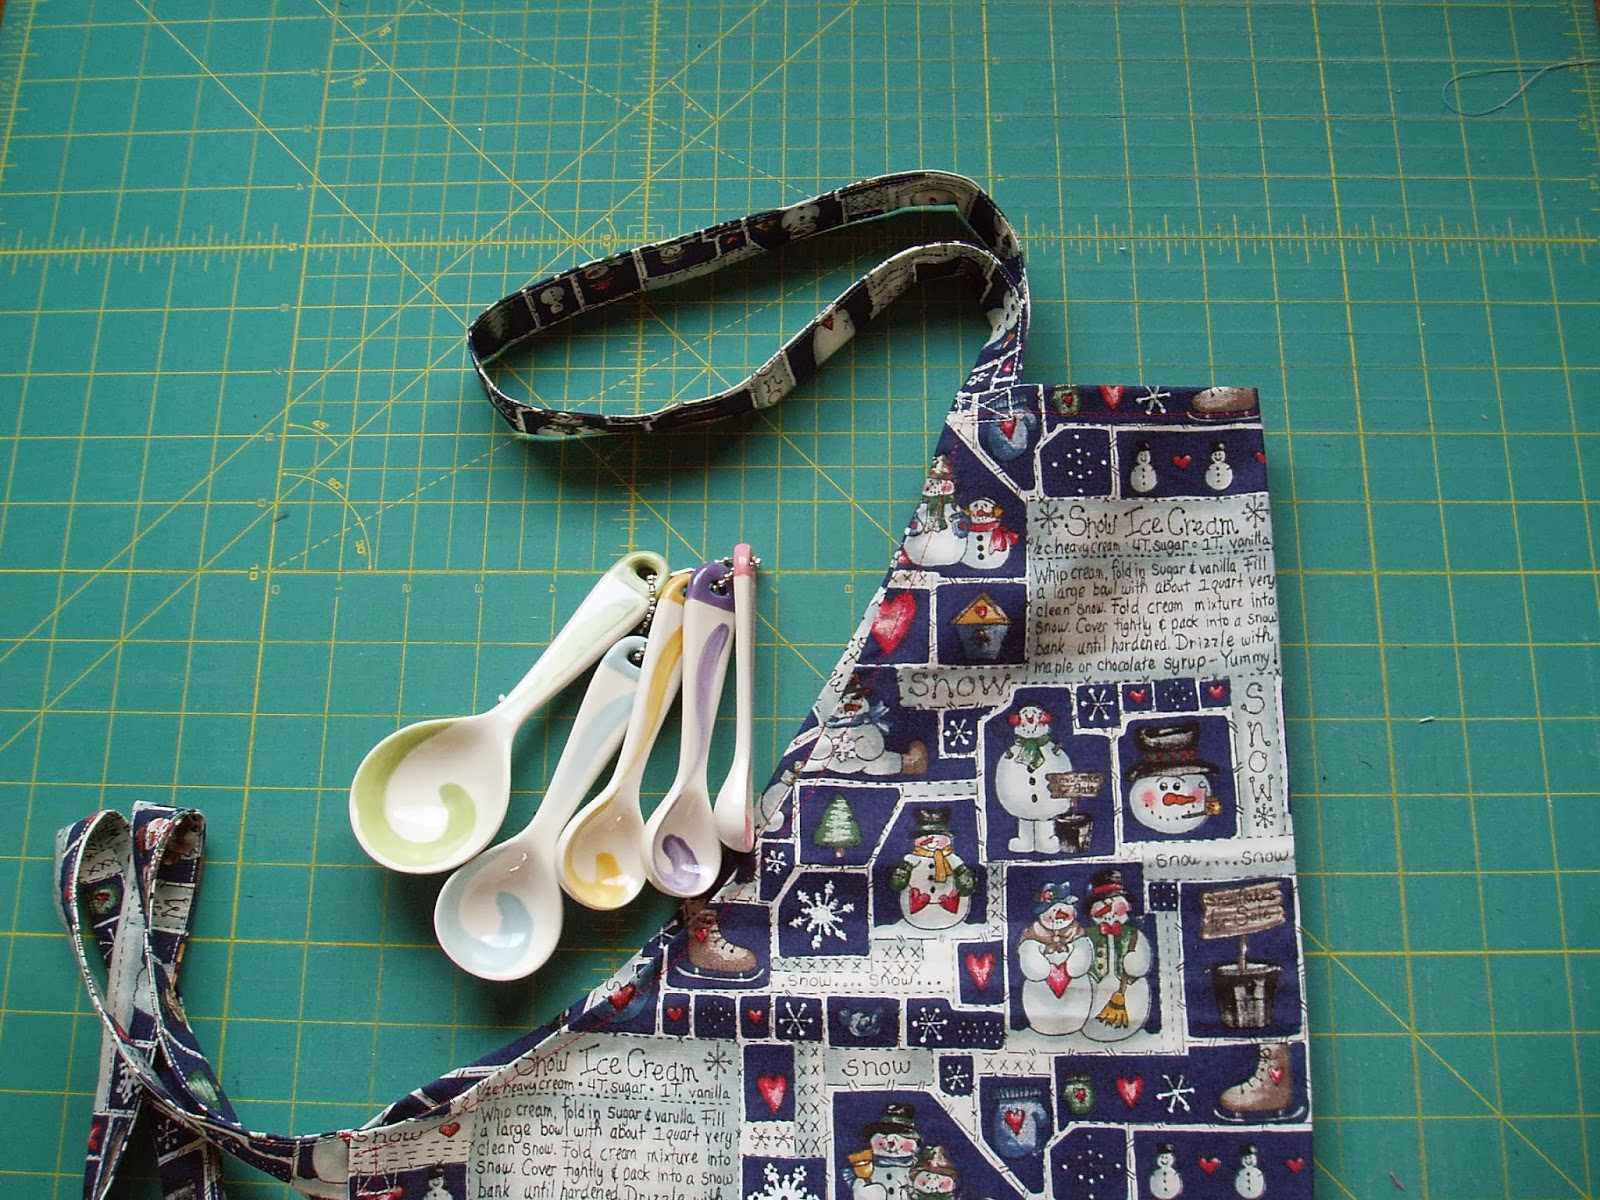 http://sunshineintheattic.blogspot.com/2014/01/joining-in-handmade-christmas-challenge.html